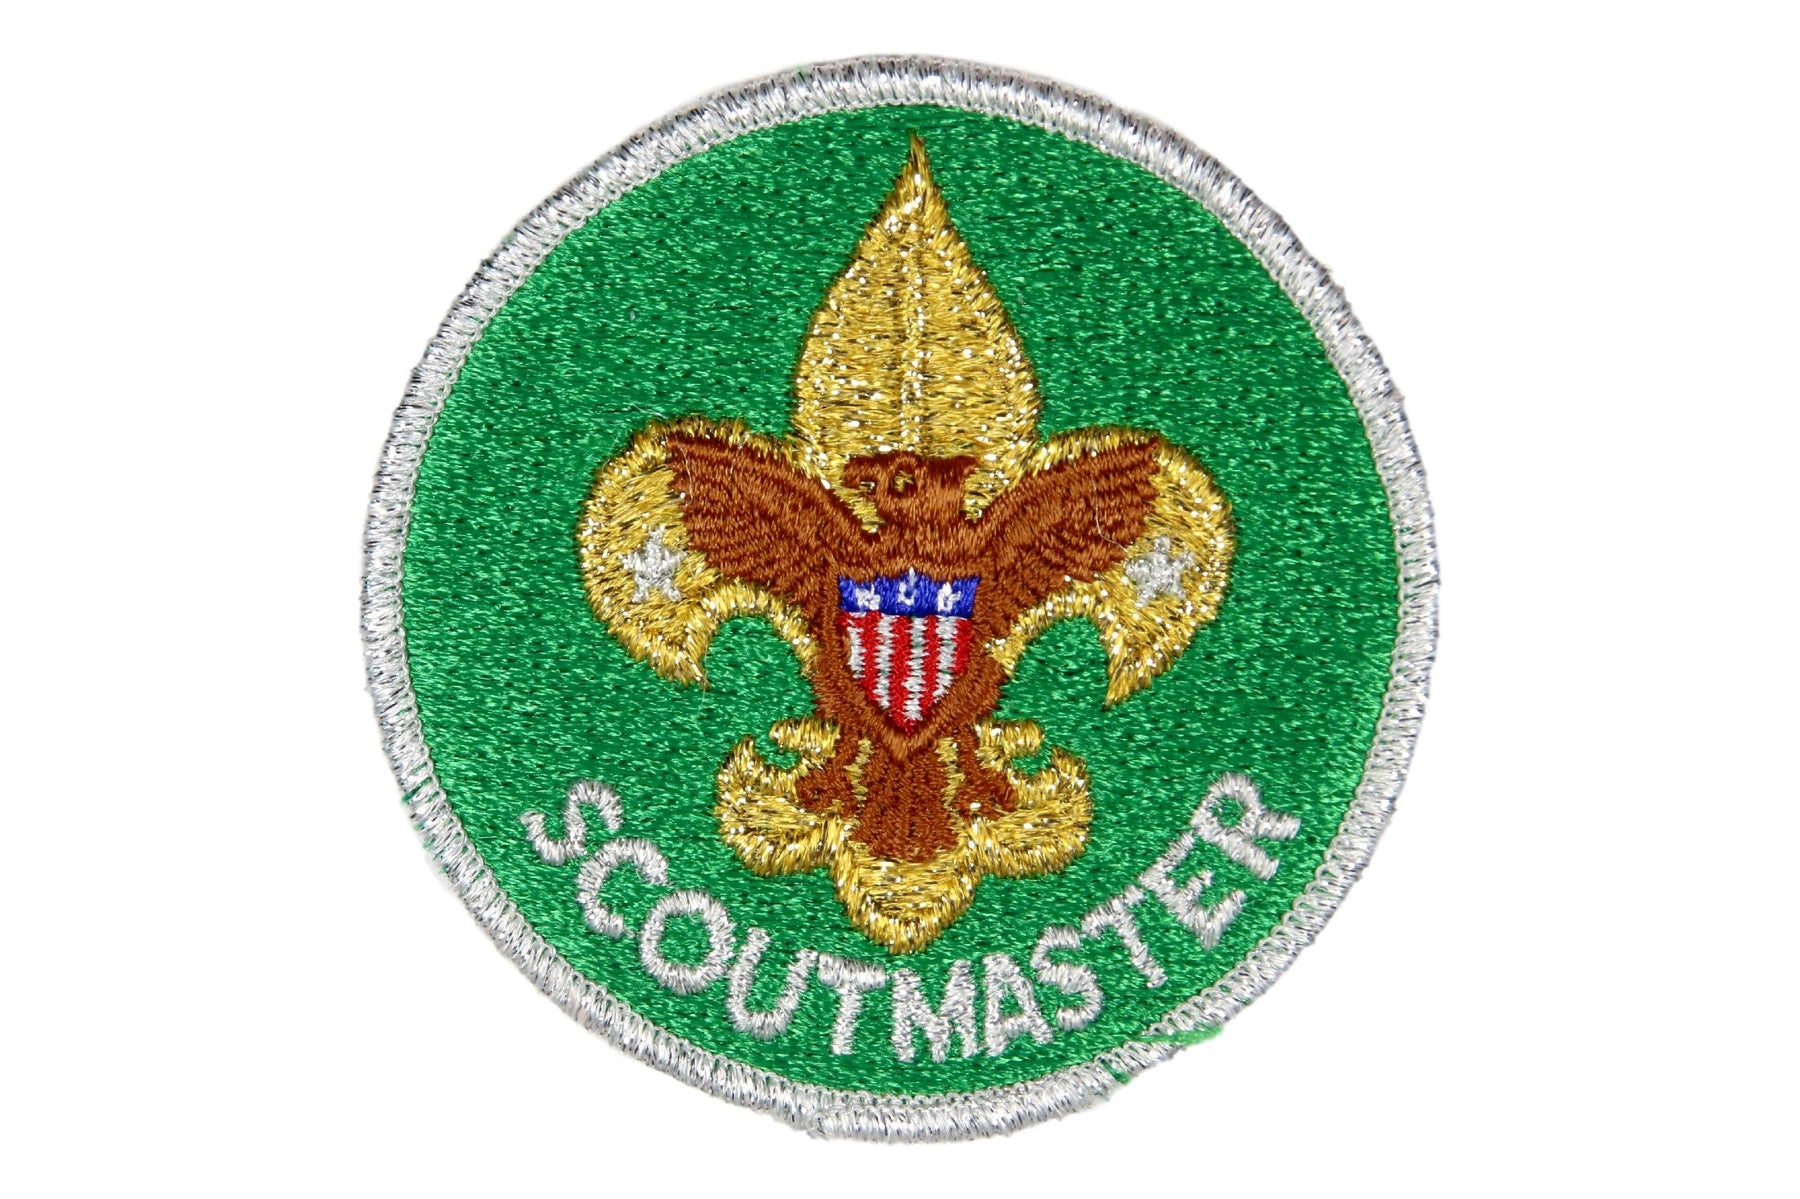 Scoutmaster Patch 1980s with Silver Mylar Border